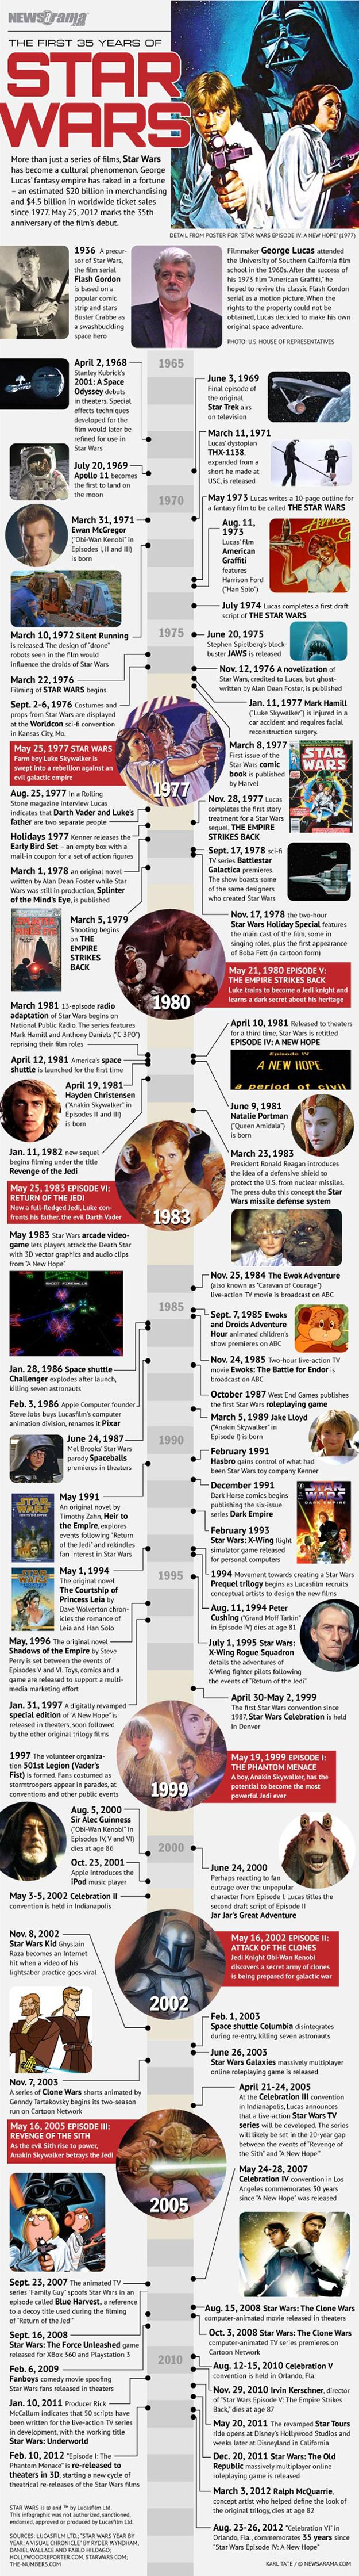 The first 35 years of Star Wars: From May 25th, 1977-2012.